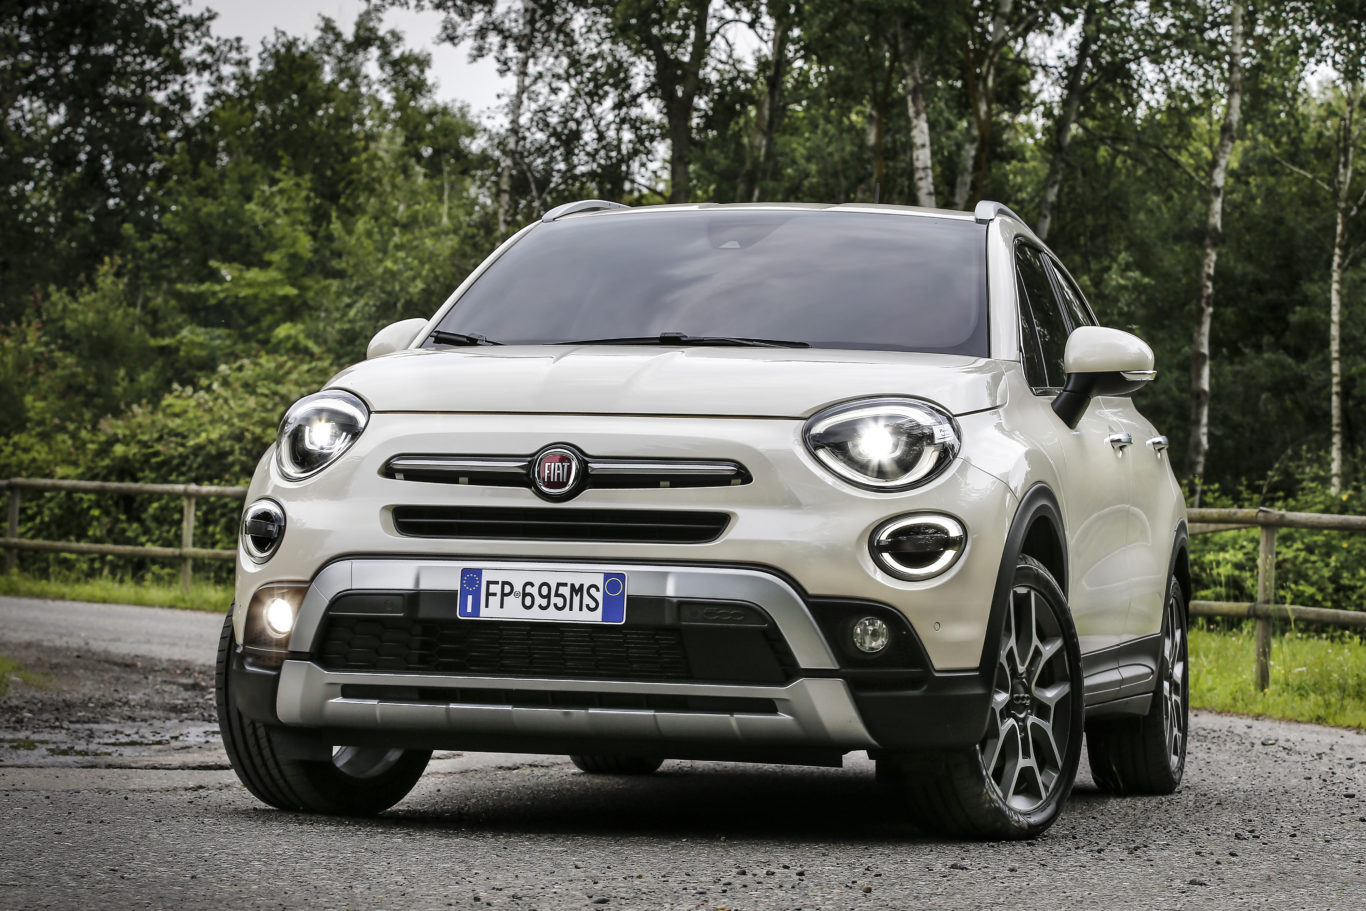 The 500X's chunky looks make it far more imposing than its size would lead you to believe